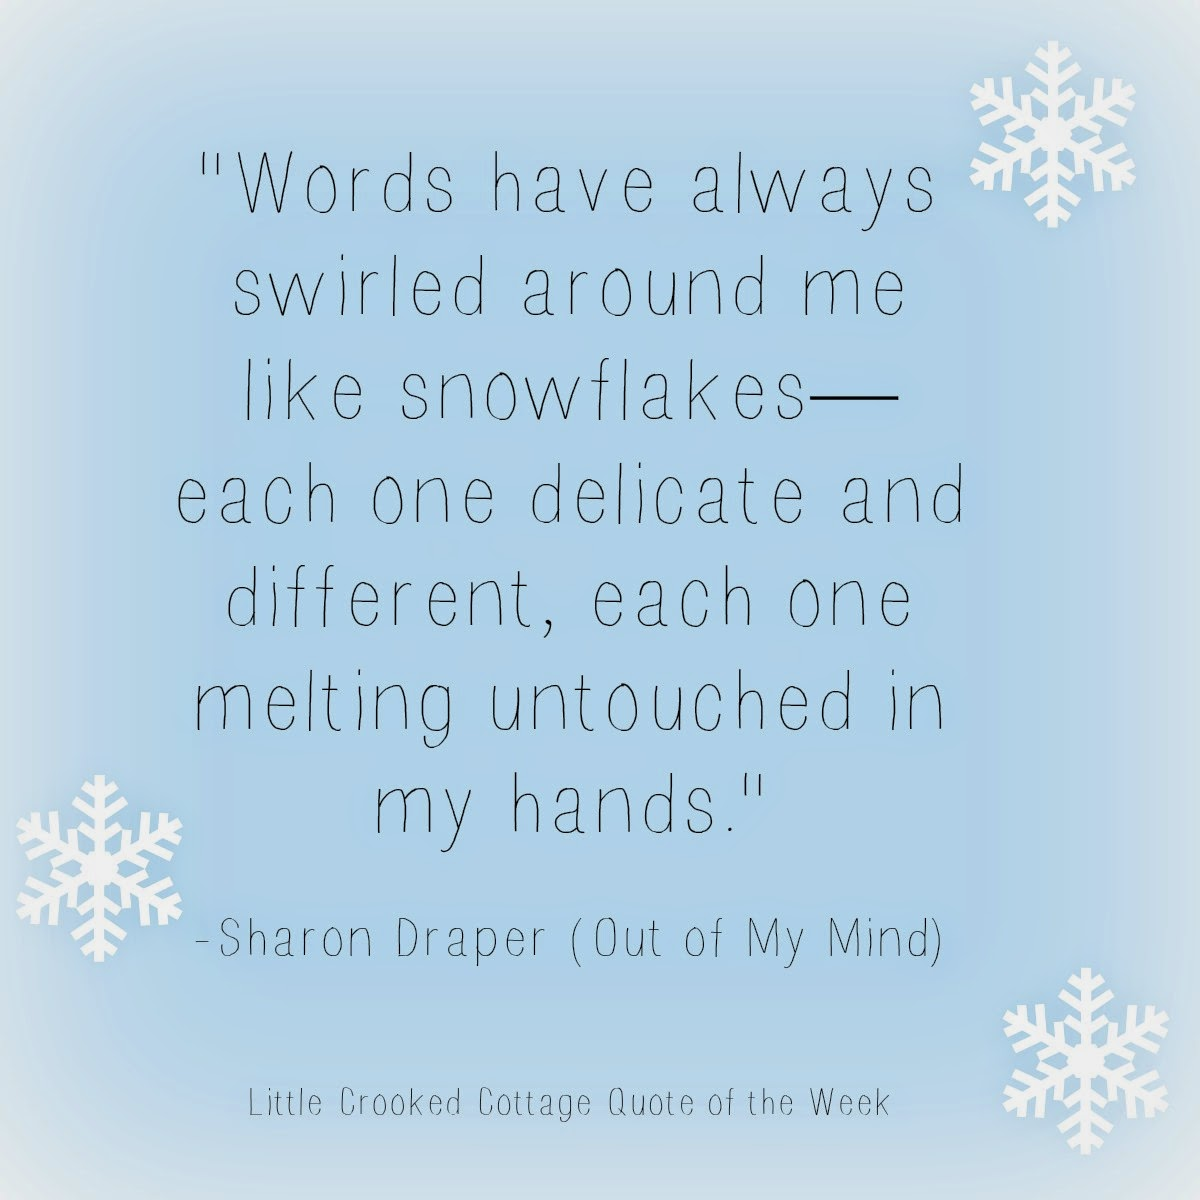 Quotes Of: My Mind Sharon Draper Out Of Quotes. QuotesGram